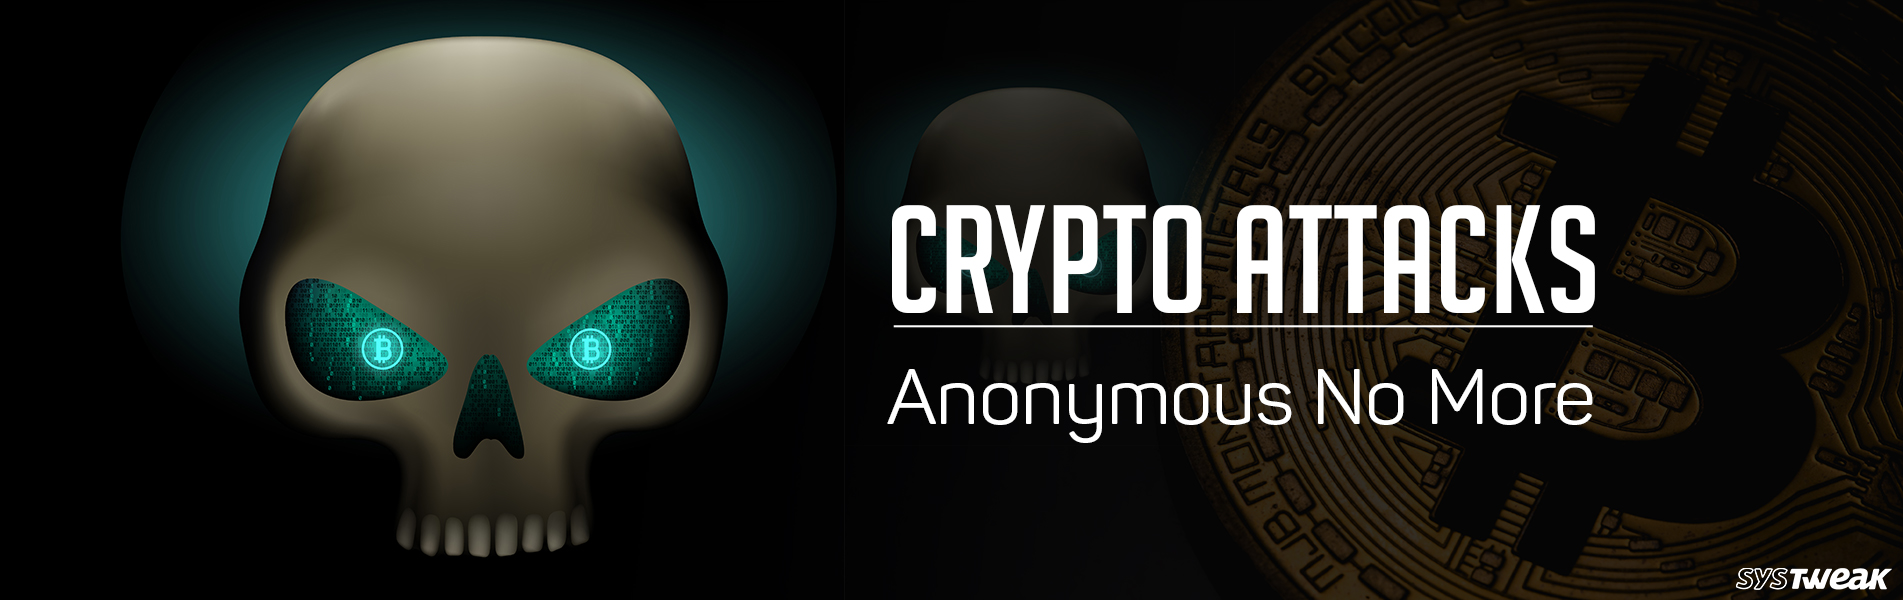 Crypto Attacks: Anonymous No More